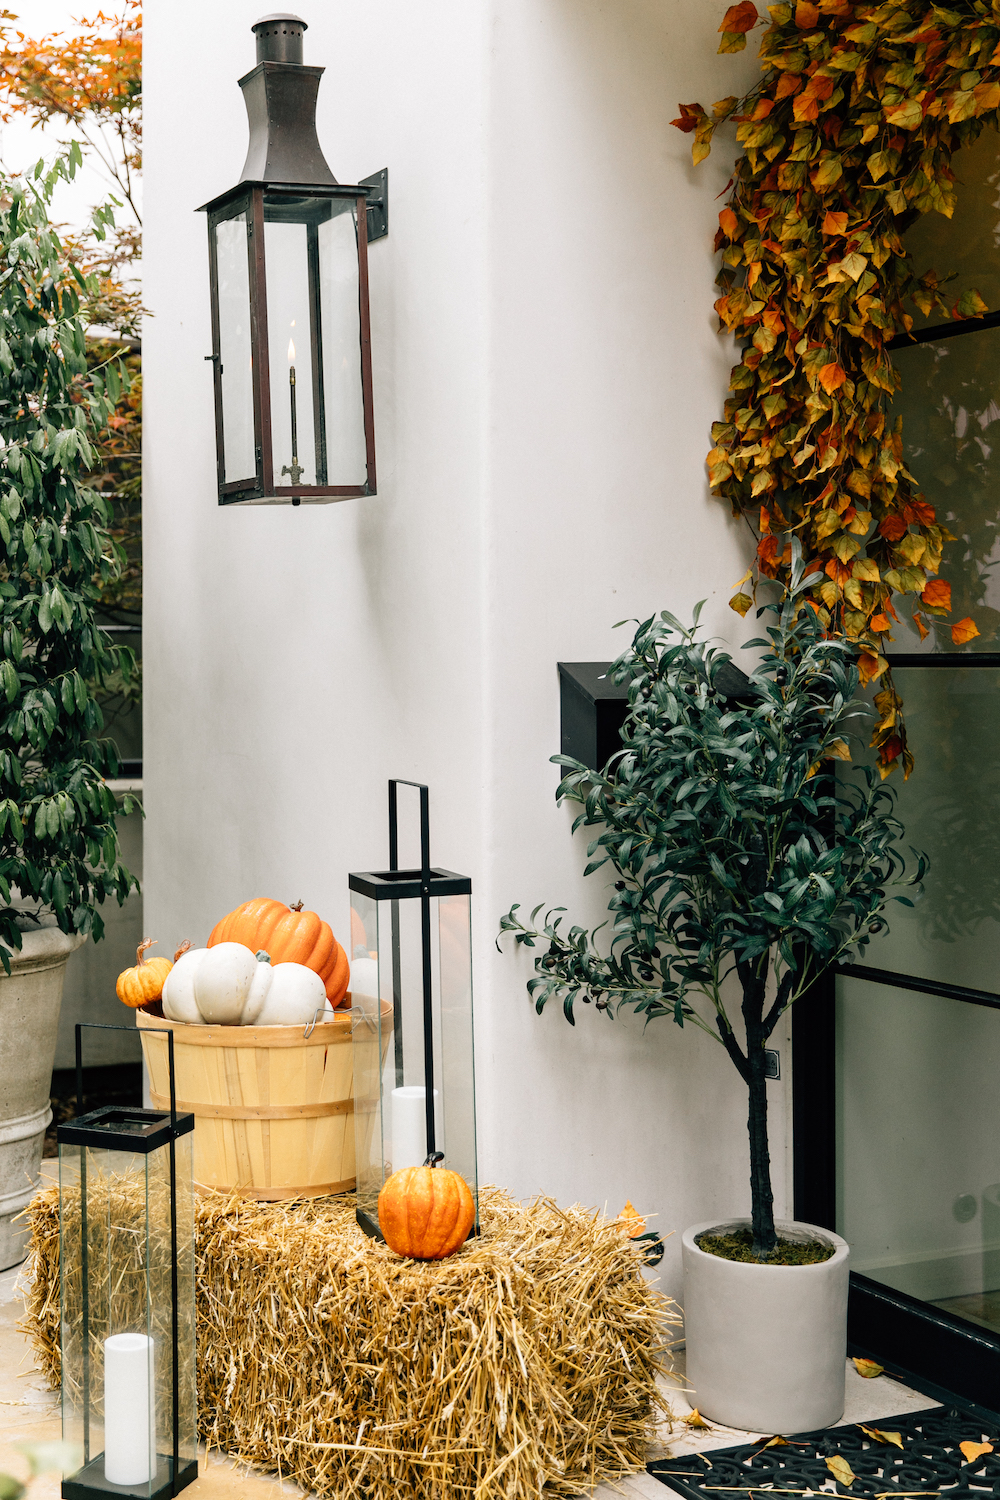 camille's porch gets a fall makeover with target products